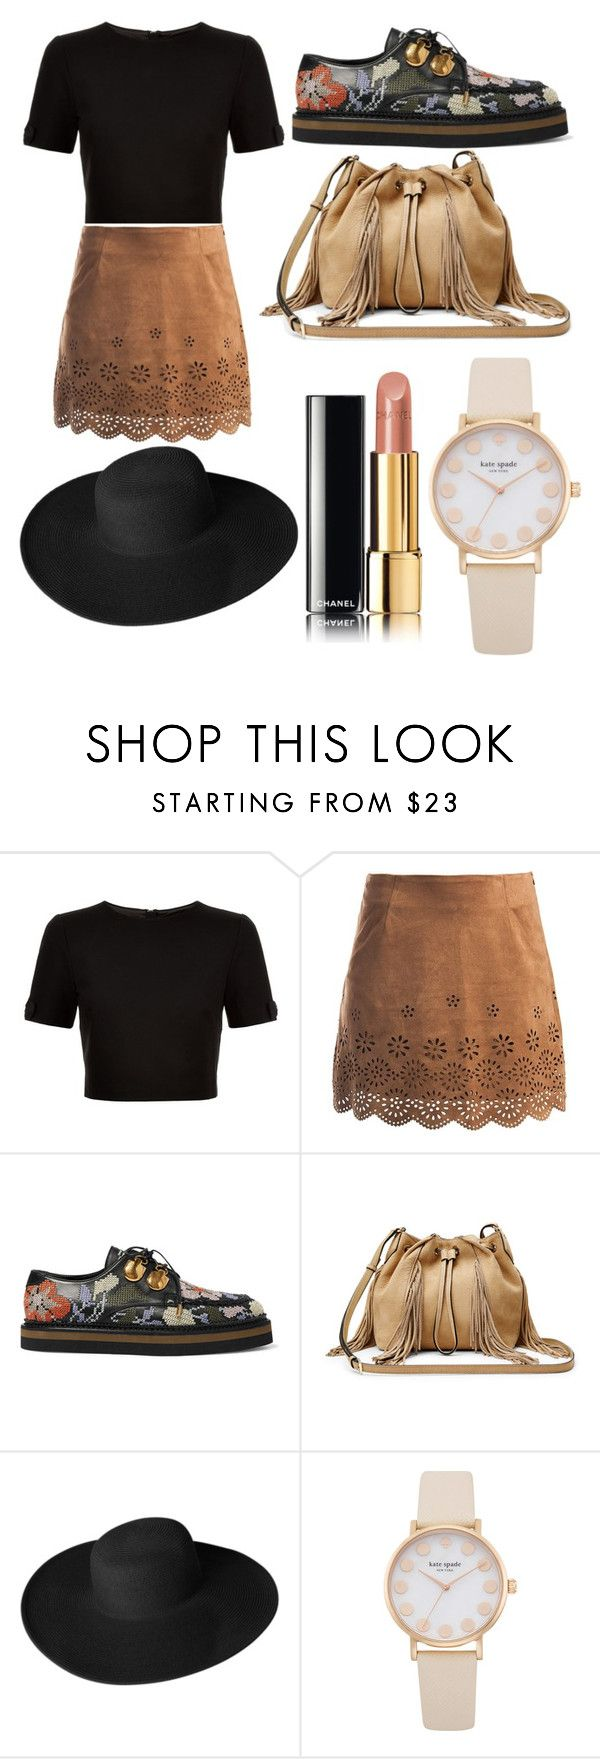 """how to wear an oxford shoes"" by beatrigitaa on Polyvore featuring Ted Baker, Sans Souci, Alexander McQueen, Diane Von Furstenberg, Dorfman Pacific and Chanel"